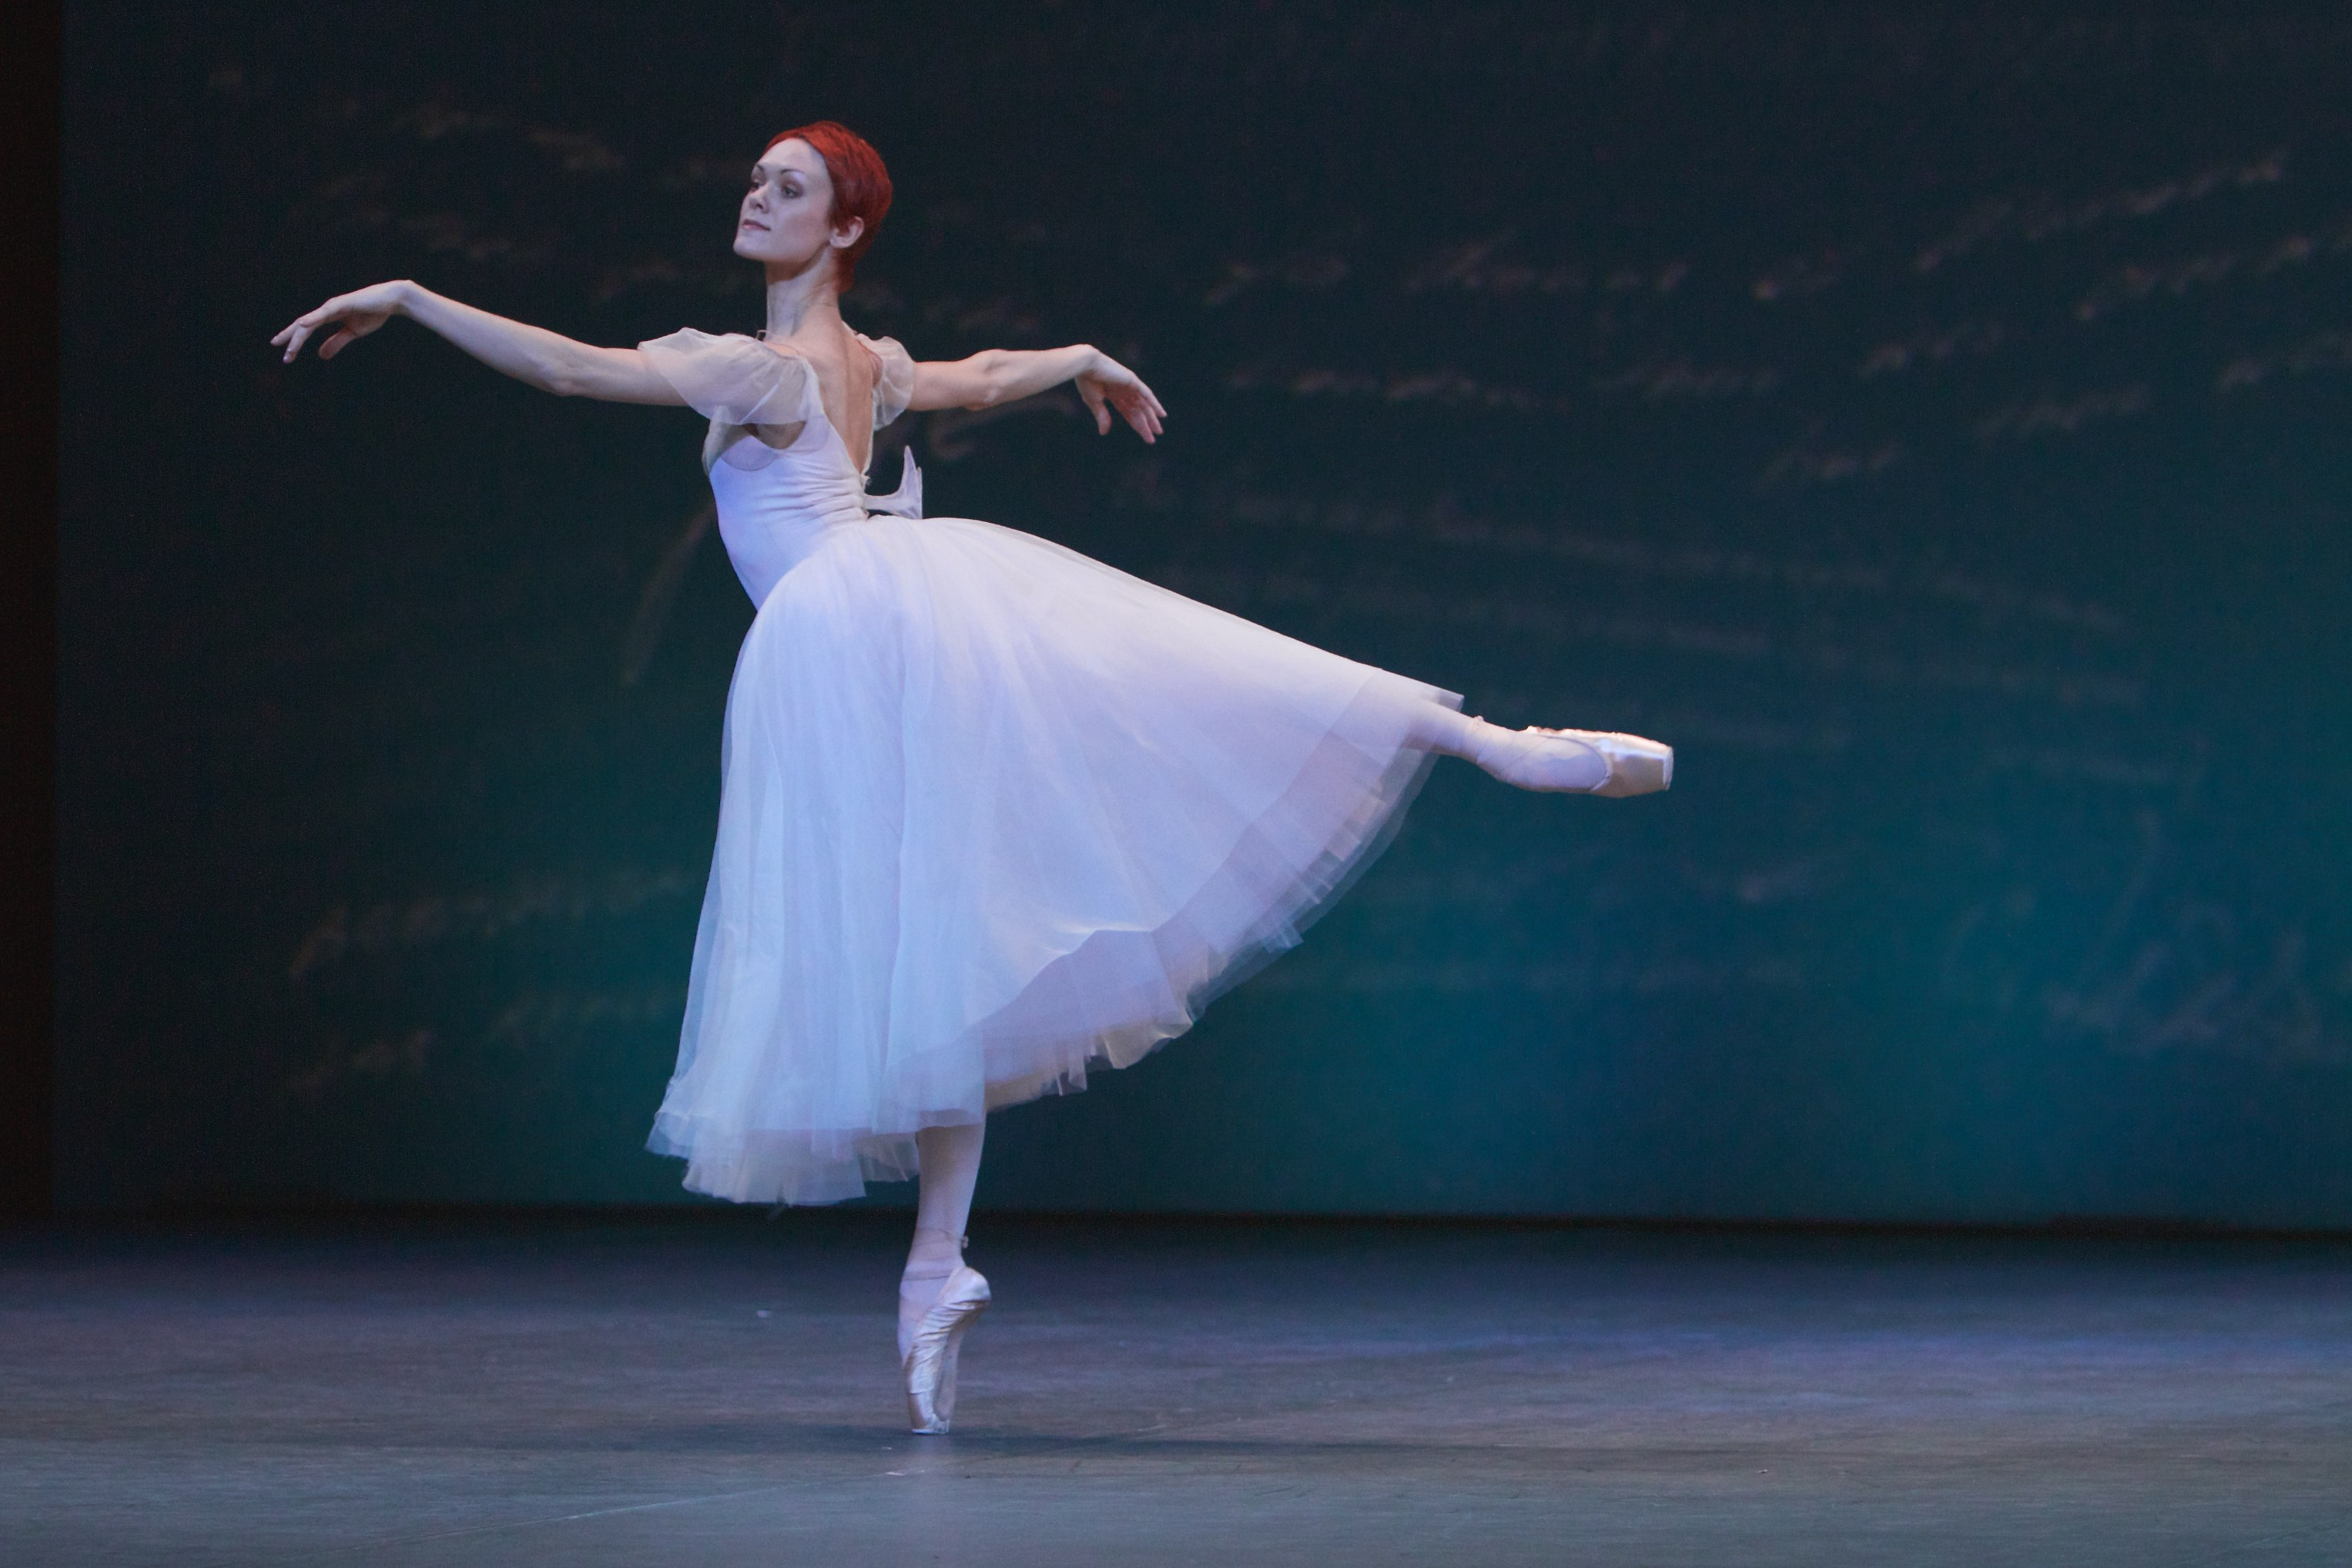 ballet dancer stands on pointe shoe in long white dress